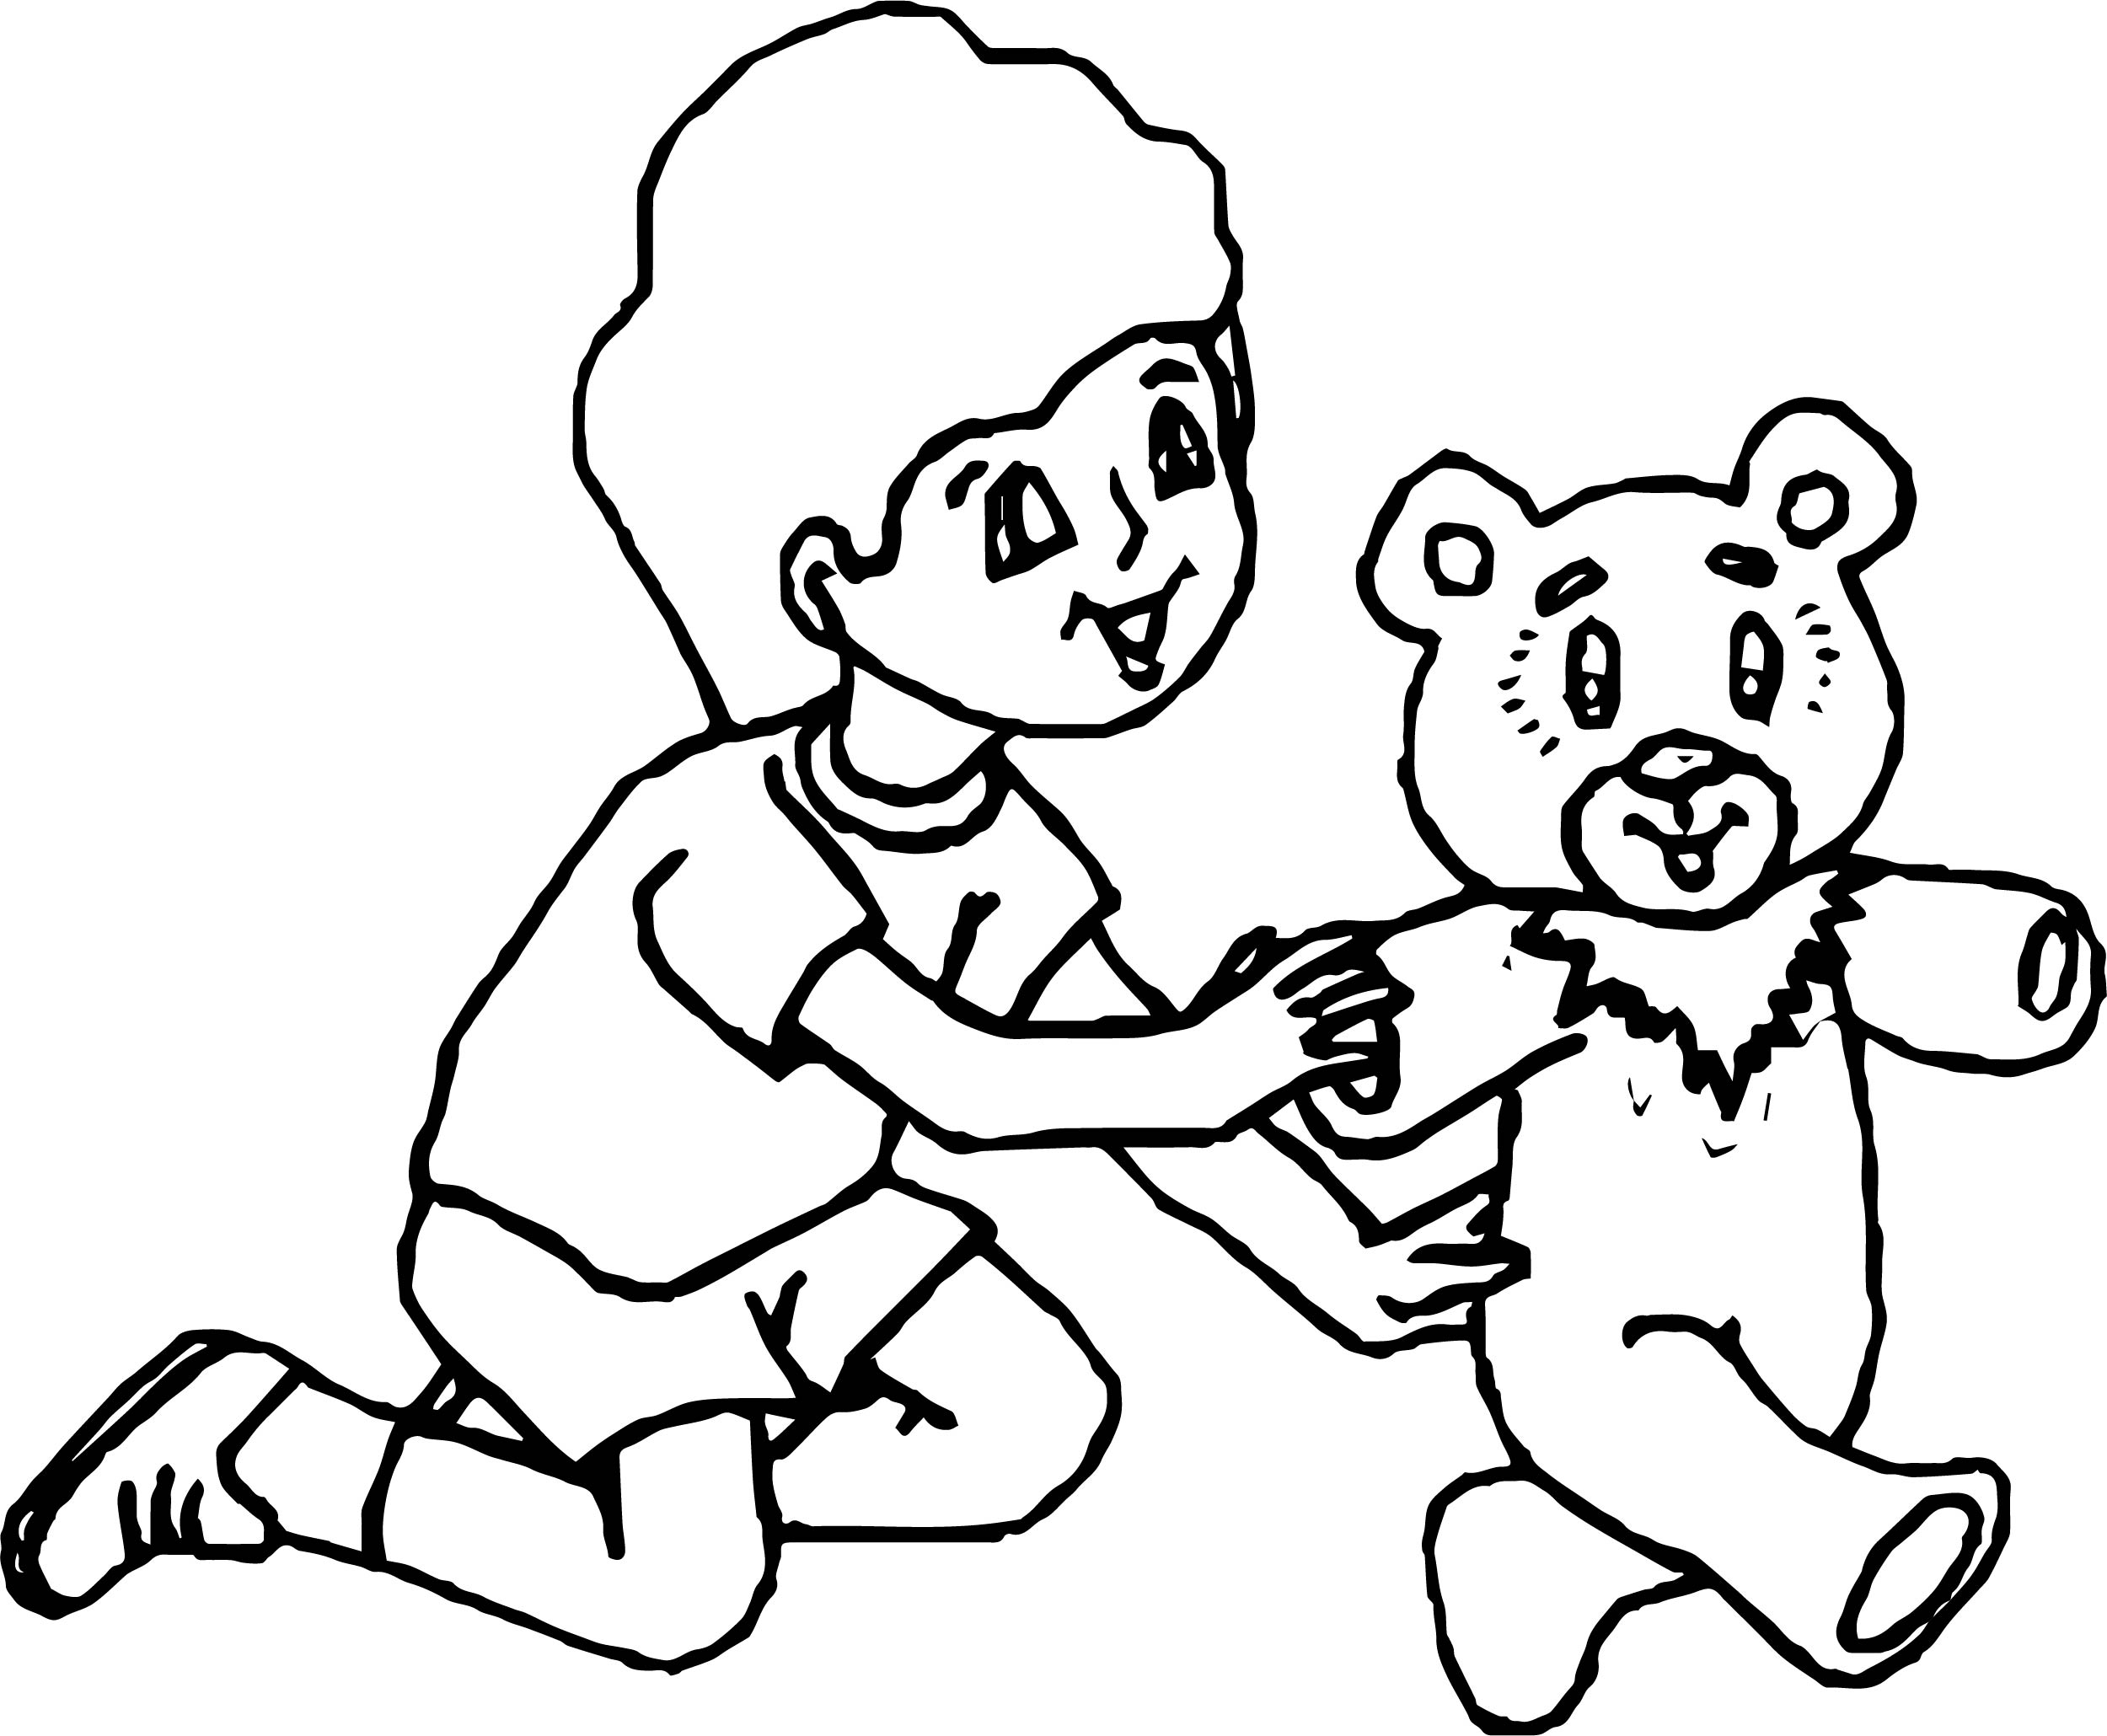 Come Bear Coloring Page